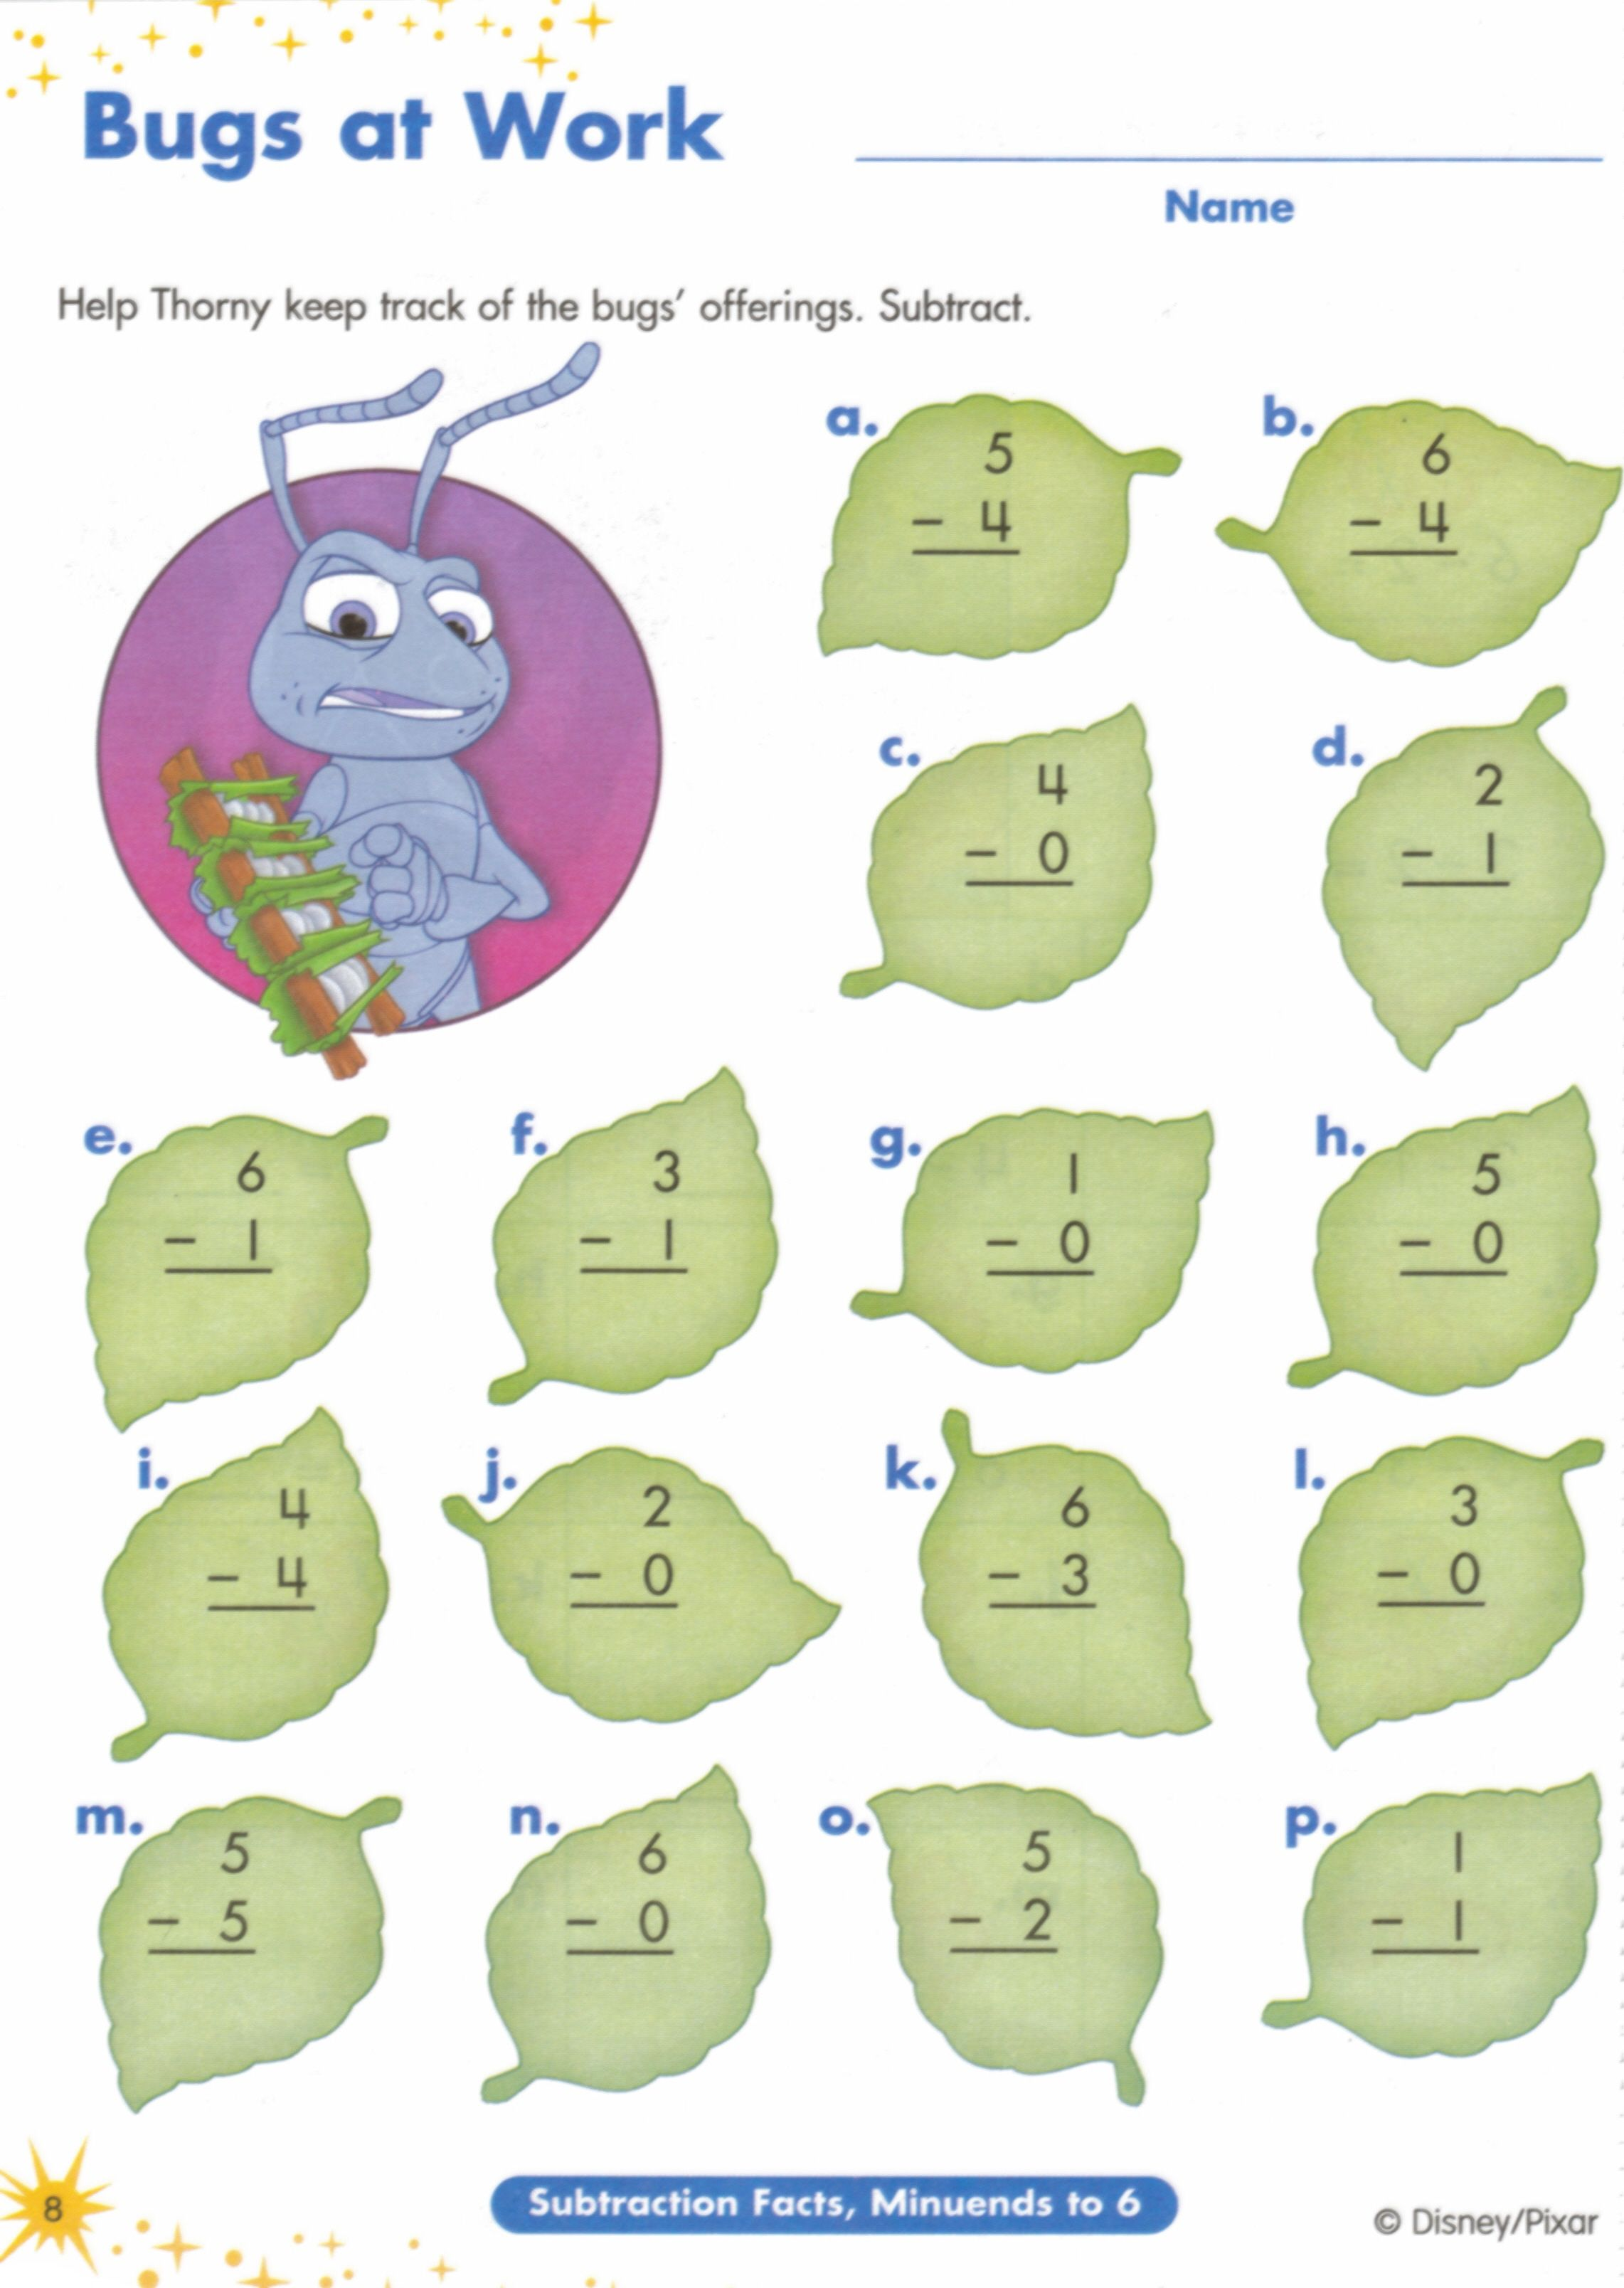 Aldiablosus  Surprising  Images About Worksheets On Pinterest  Fun Facts For Kids  With Hot  Images About Worksheets On Pinterest  Fun Facts For Kids Earth Day Worksheets And Jungles With Cool Crossword Puzzle Worksheet Also R Sound Worksheets In Addition Plural Nouns Worksheets Rd Grade And Affixes Worksheets As Well As Family And Consumer Science Worksheets Additionally Xyz Affair Worksheet From Pinterestcom With Aldiablosus  Hot  Images About Worksheets On Pinterest  Fun Facts For Kids  With Cool  Images About Worksheets On Pinterest  Fun Facts For Kids Earth Day Worksheets And Jungles And Surprising Crossword Puzzle Worksheet Also R Sound Worksheets In Addition Plural Nouns Worksheets Rd Grade From Pinterestcom